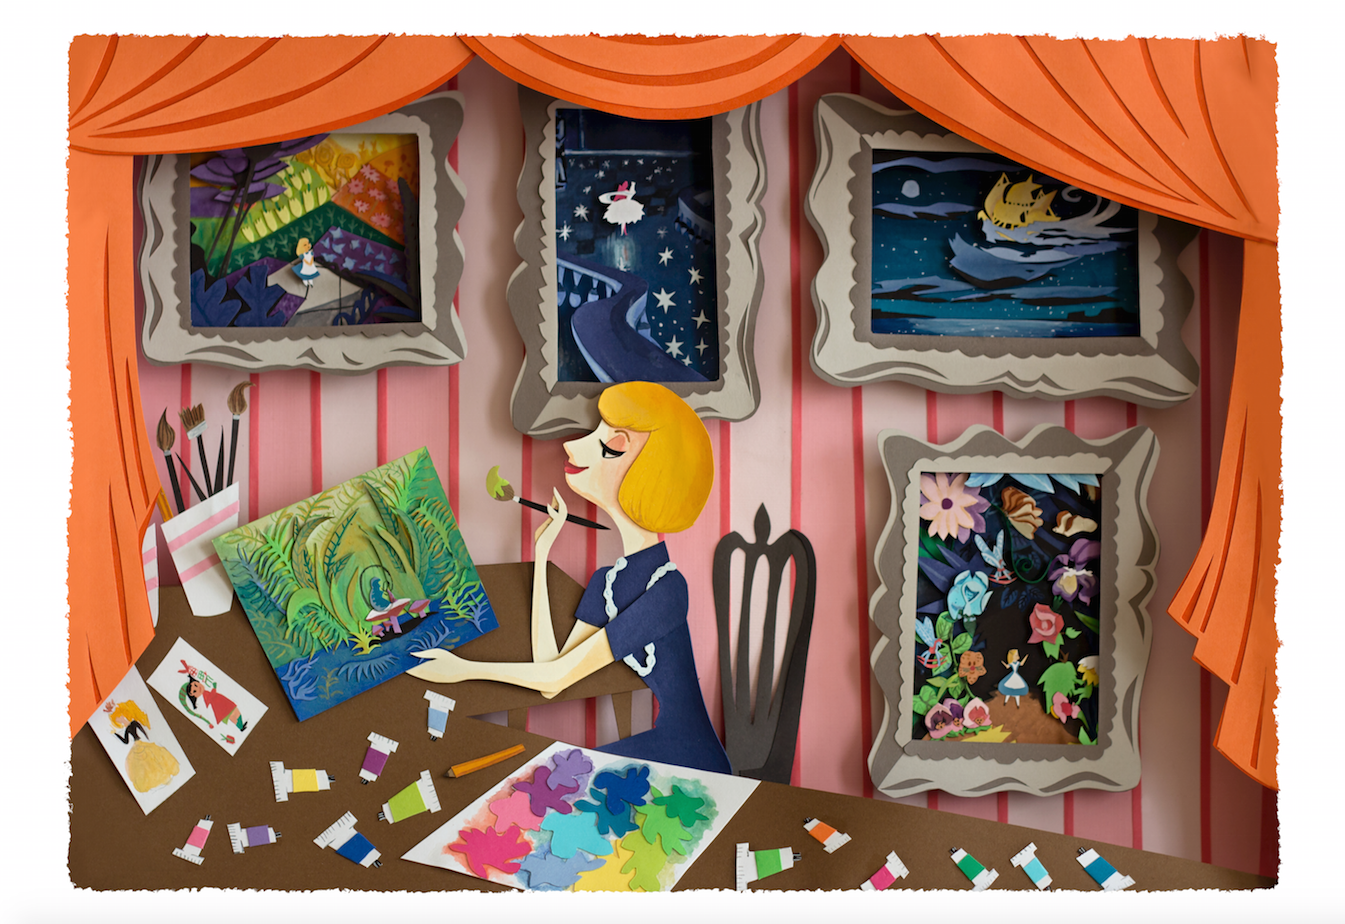 Mary Blair  is best known for her paintings for the  Walt Disney Animation Studio . She worked on classic films like   Alice in Wonderland, Cinderella   ,  and   Peter Pan  .  Although Mary Blair worked mostly in gouache she also did paper cut art. So in honor of her I decided to use both paper and gouache in my portrait of her.